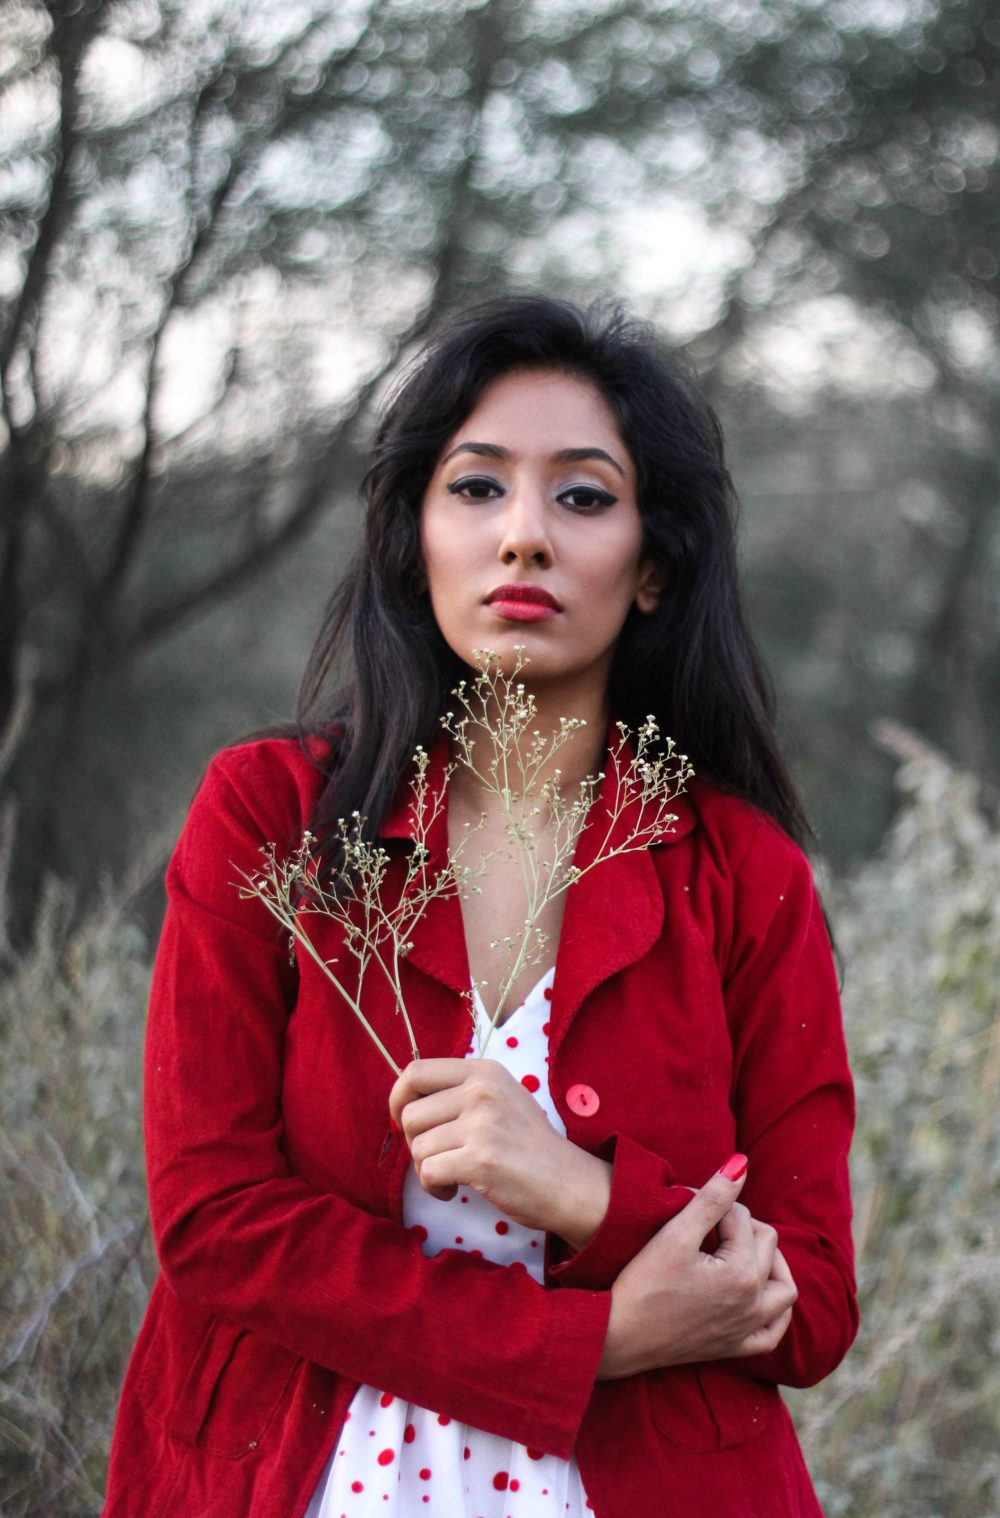 Lookbook ; Christmas post ; Christmas outfit ; Dusk ; Conceptual ; fashion photography ; Sunset ; Red Jacket ; Red Dress ; White Dress ; Dark ; Naznin ; hyderabad fashion bloggers ; hyderabad bloggers ; hyderabad fashion blogger ; I Dress for the Applause ; winter ; socks